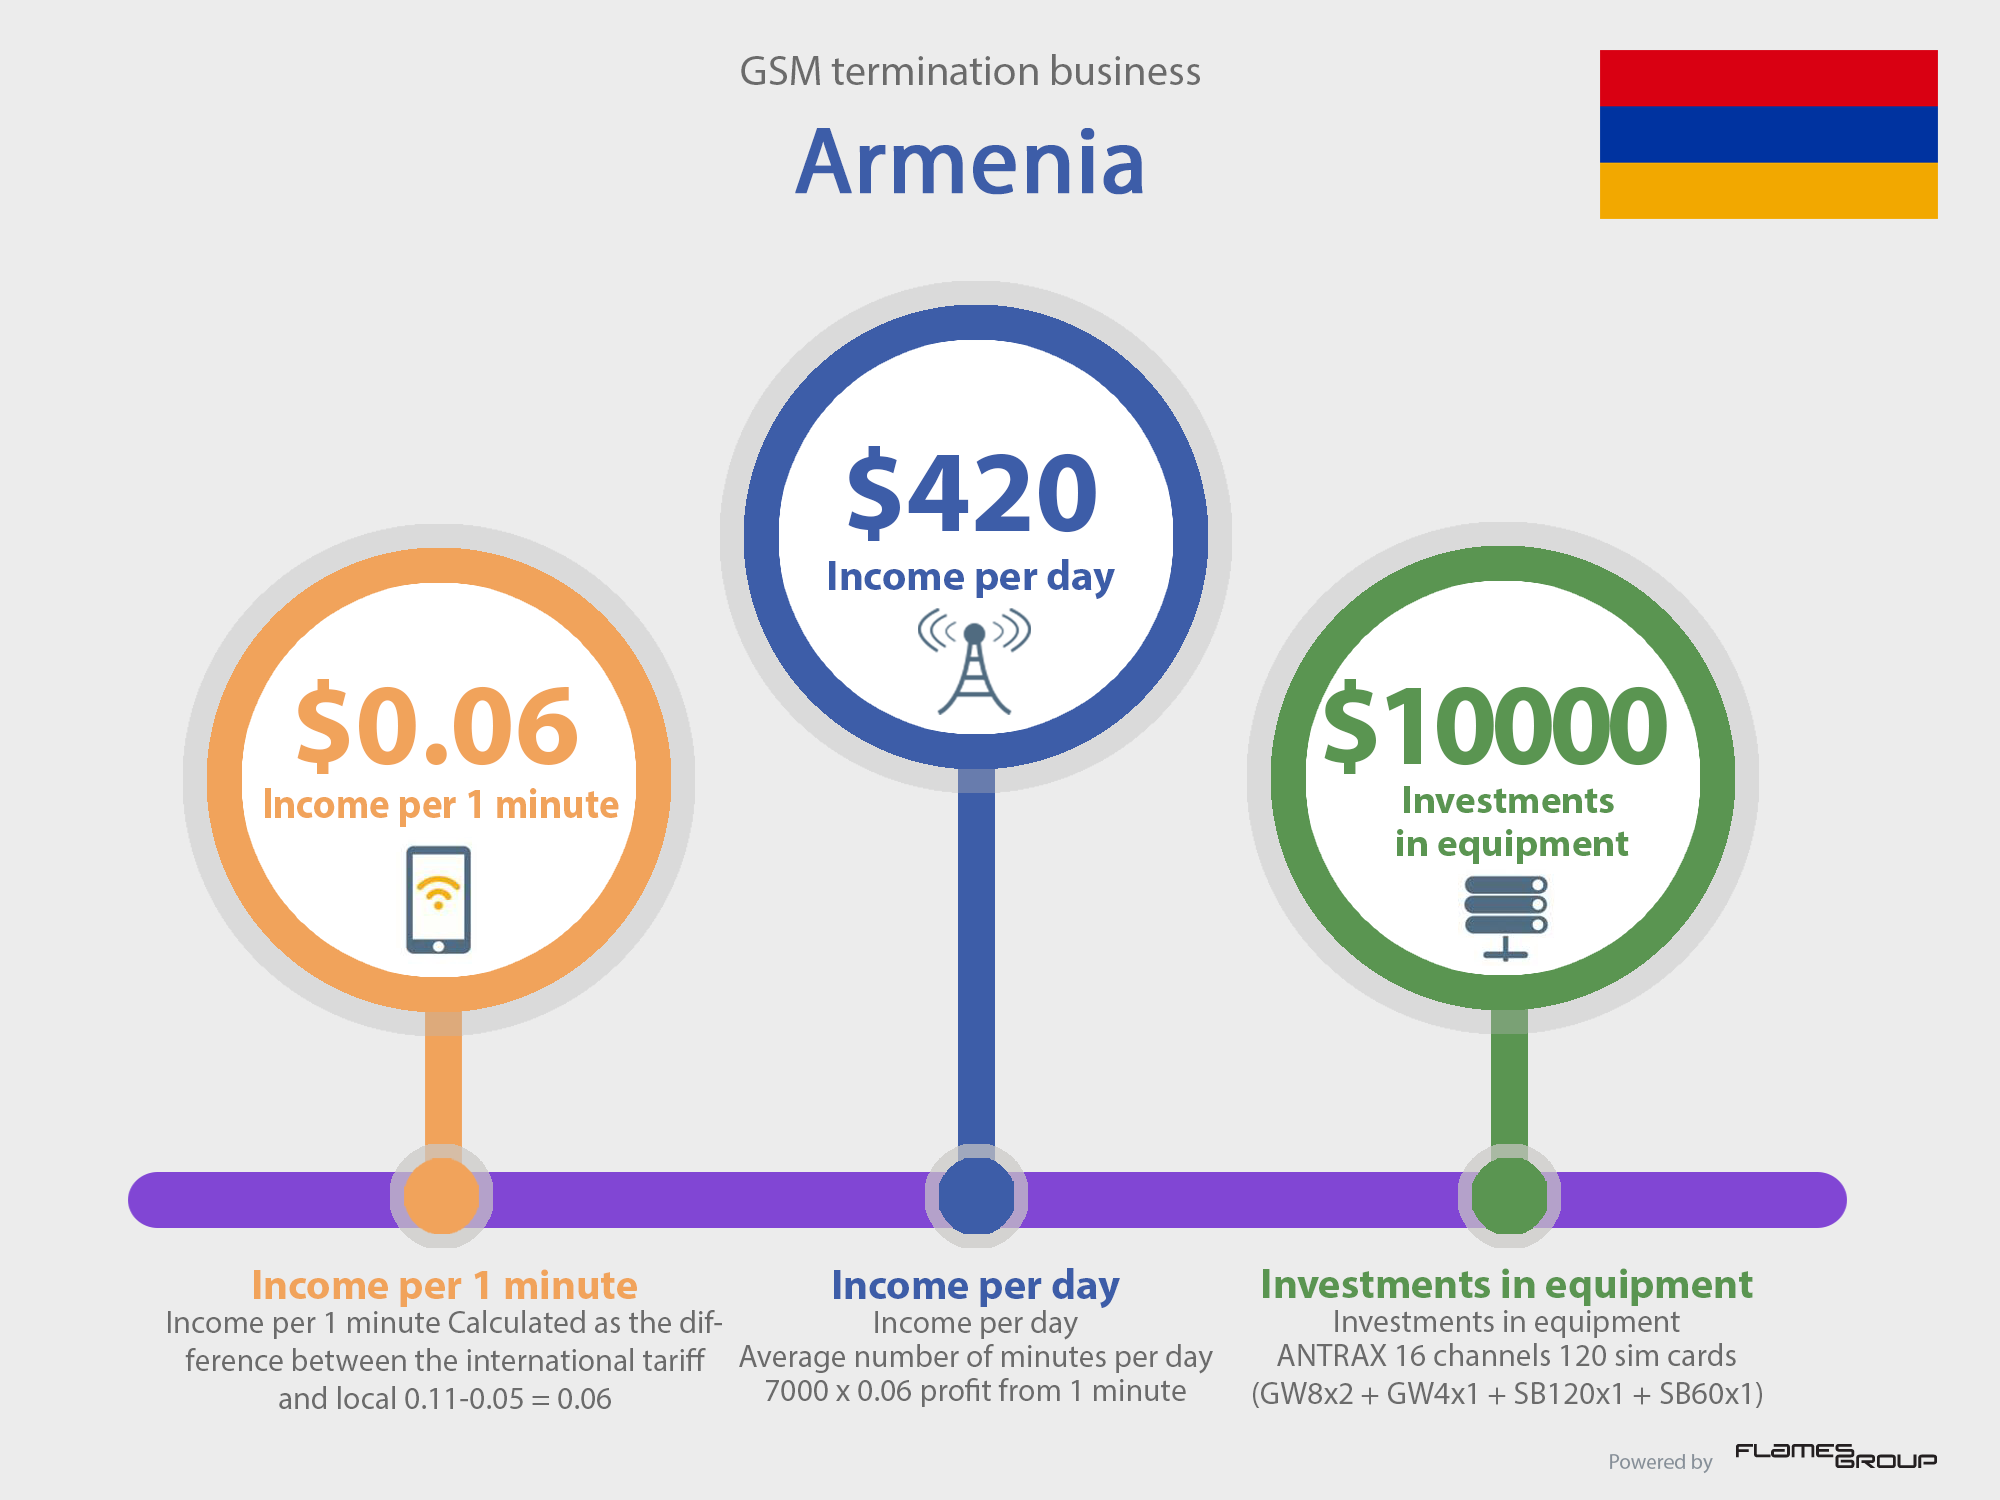 GSM termination in Armenia - Infographic ANTRAX